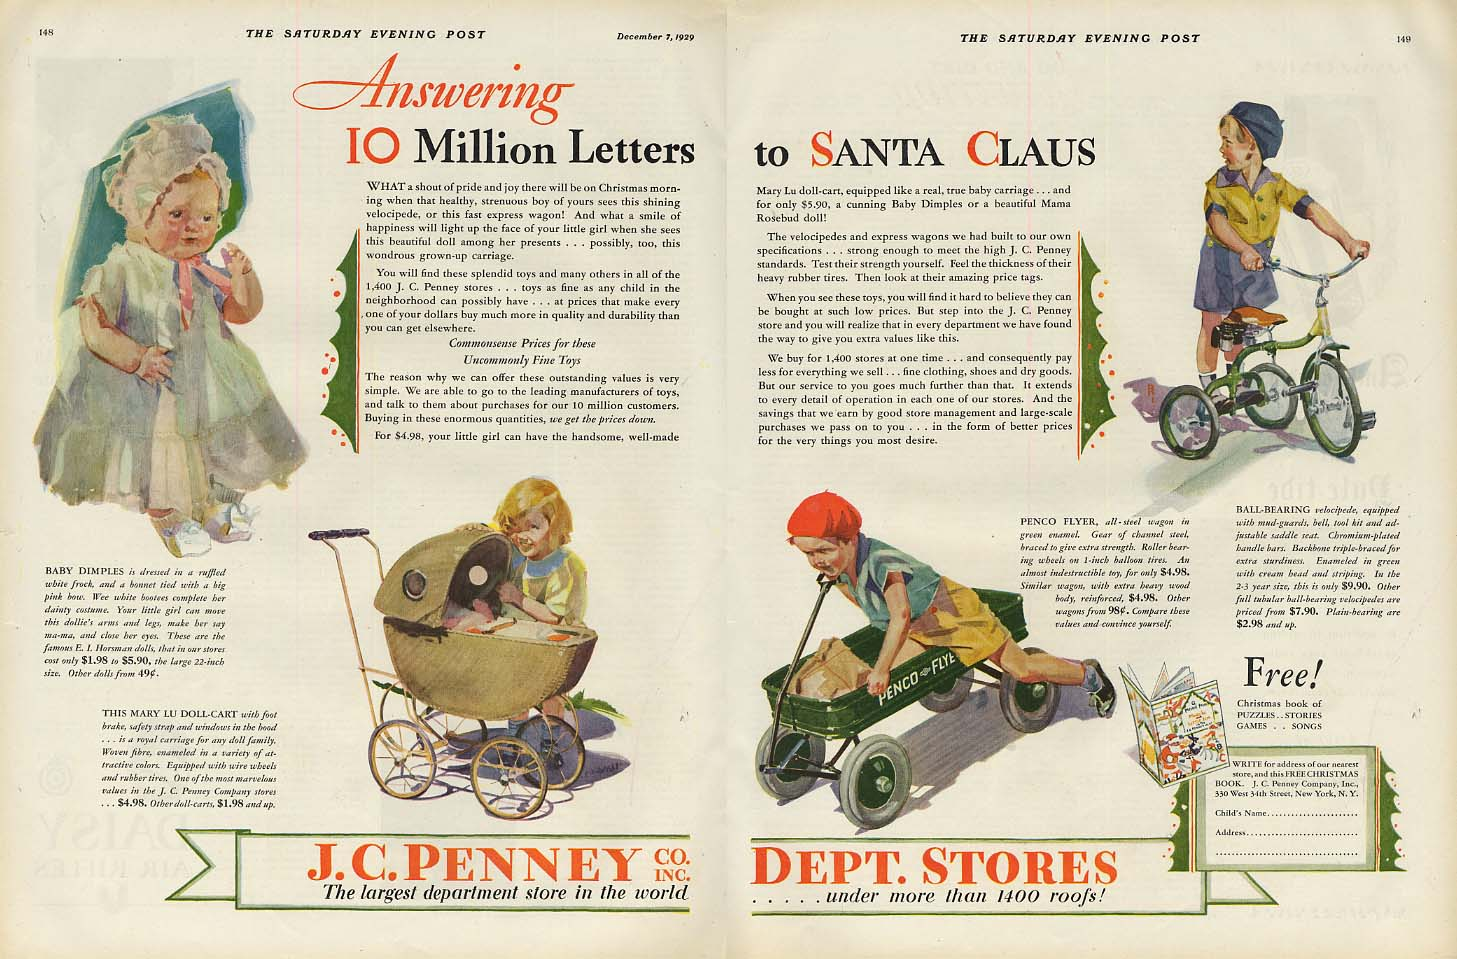 Answering 10 Million Letters to Santa Claus - J C Penney toys ad 1929 SEP